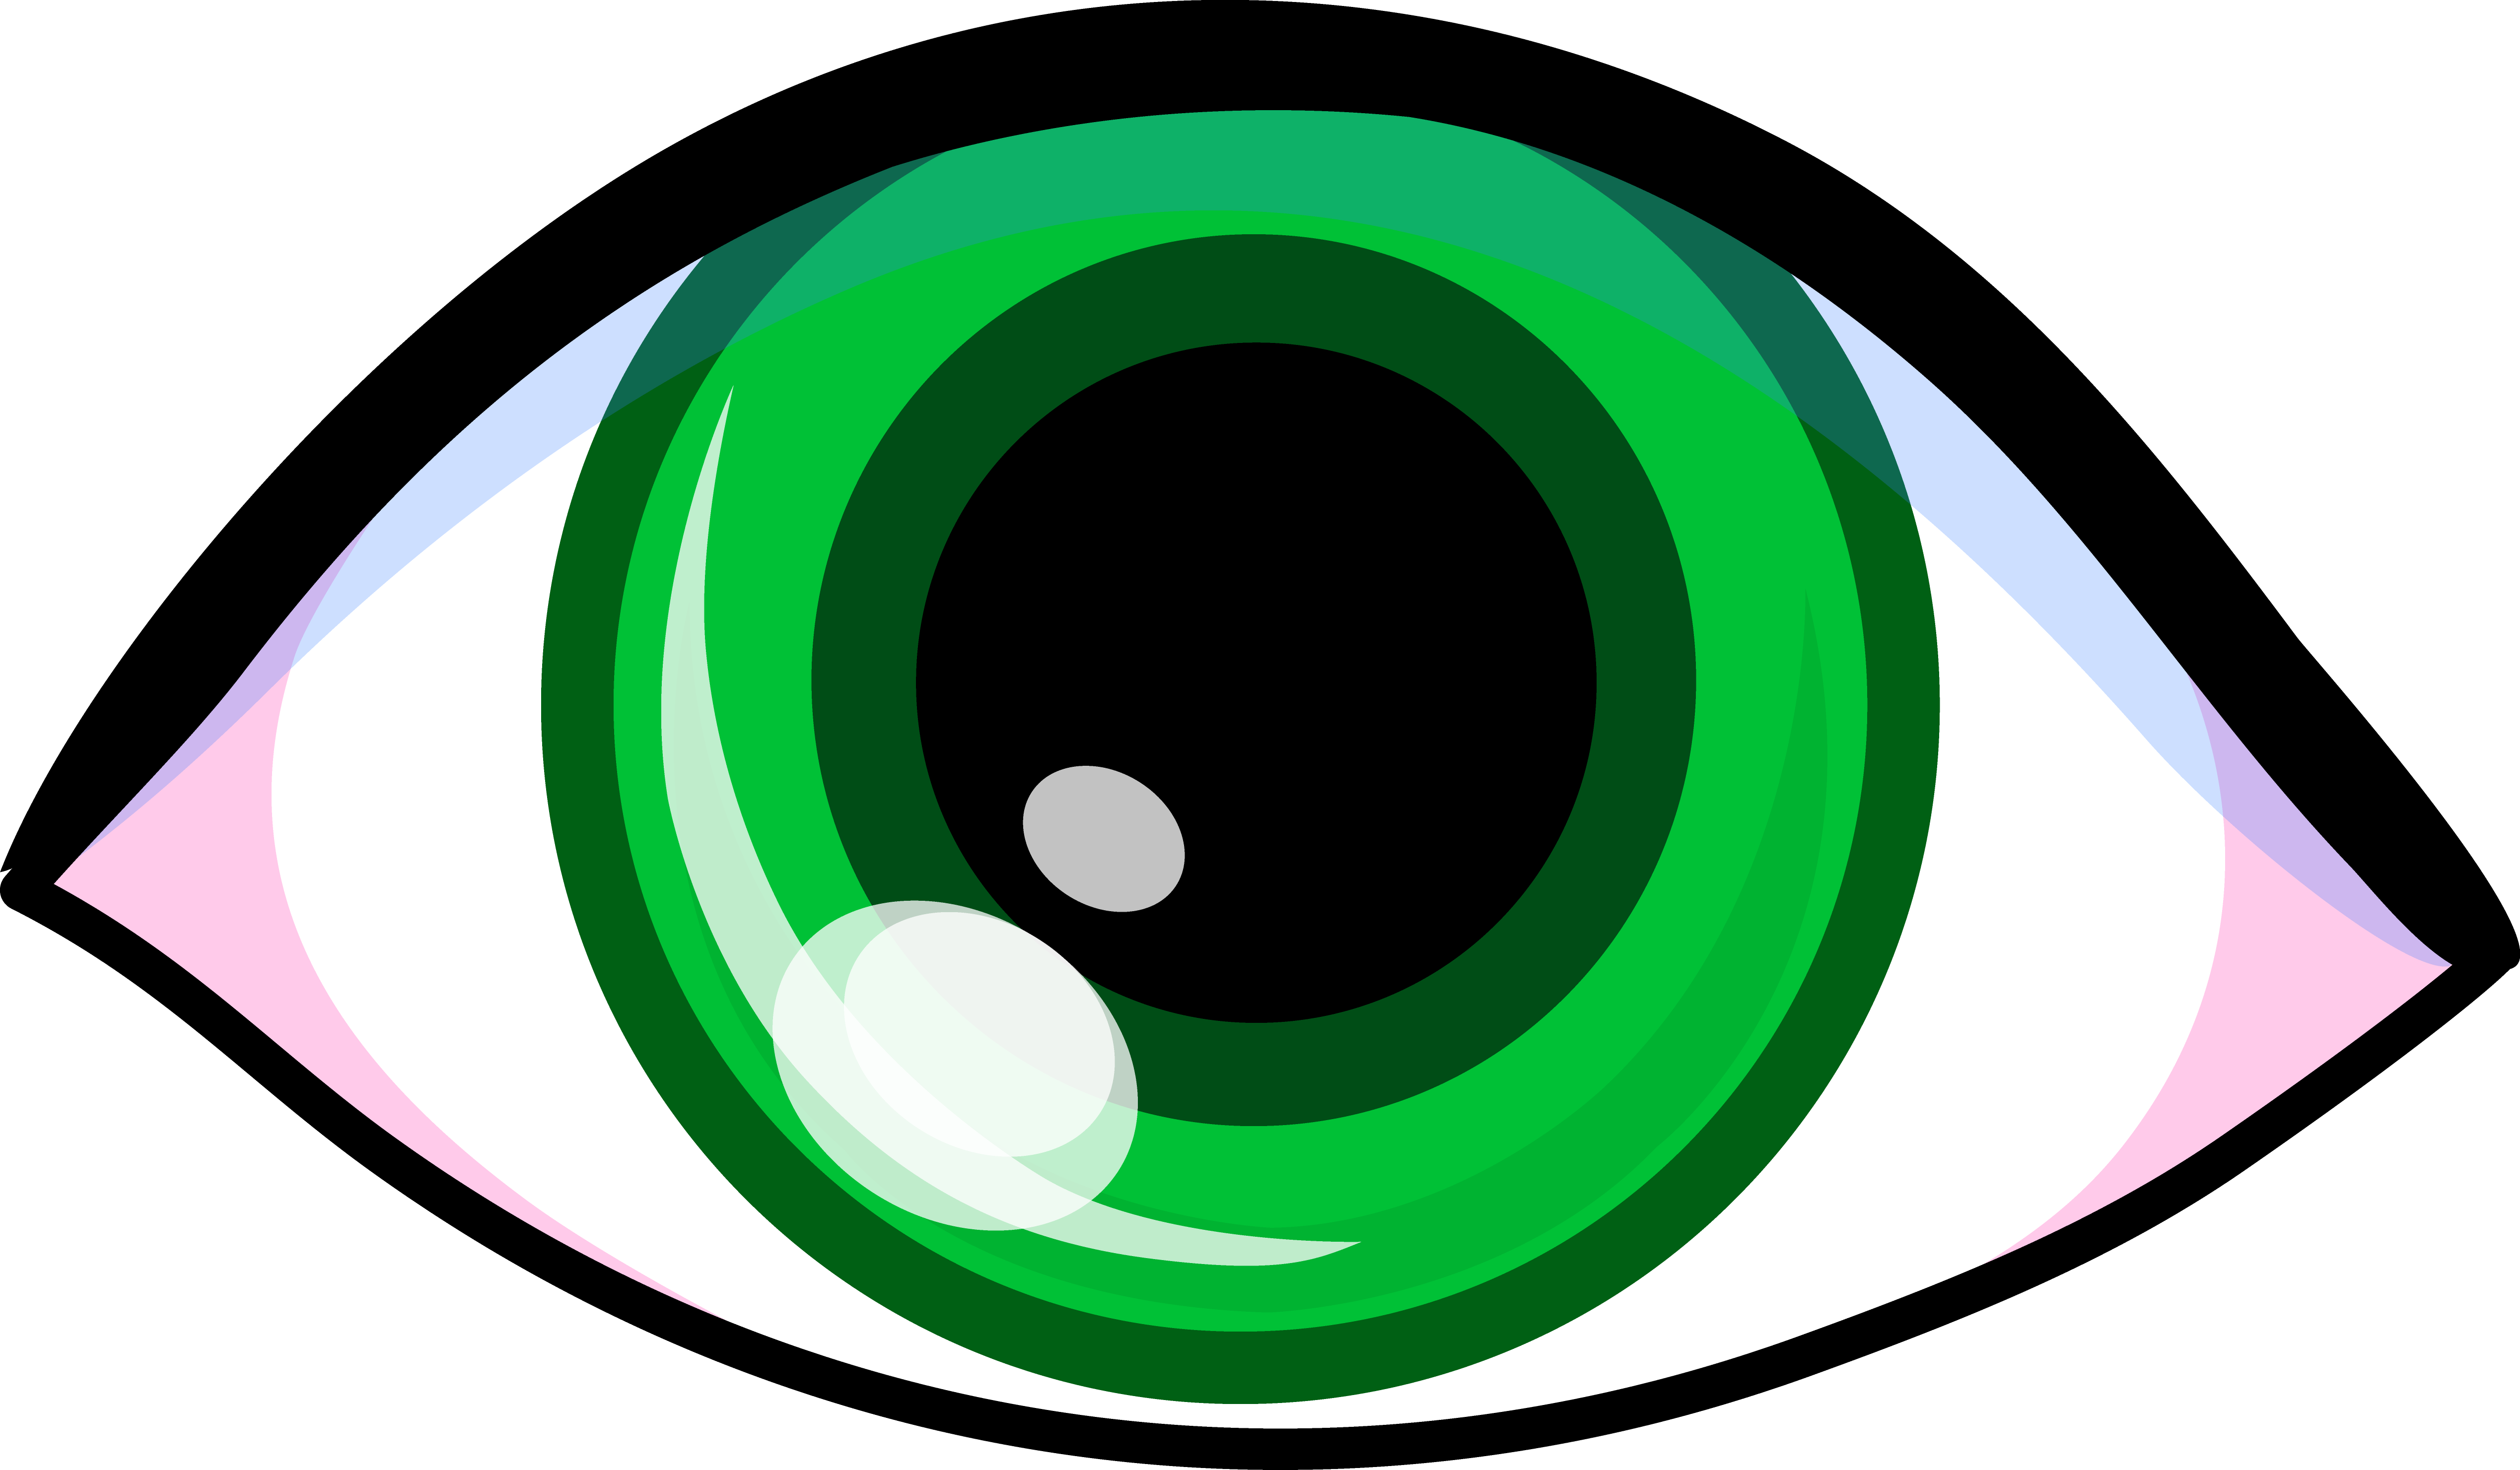 Green Eyes clipart #16, Download drawings